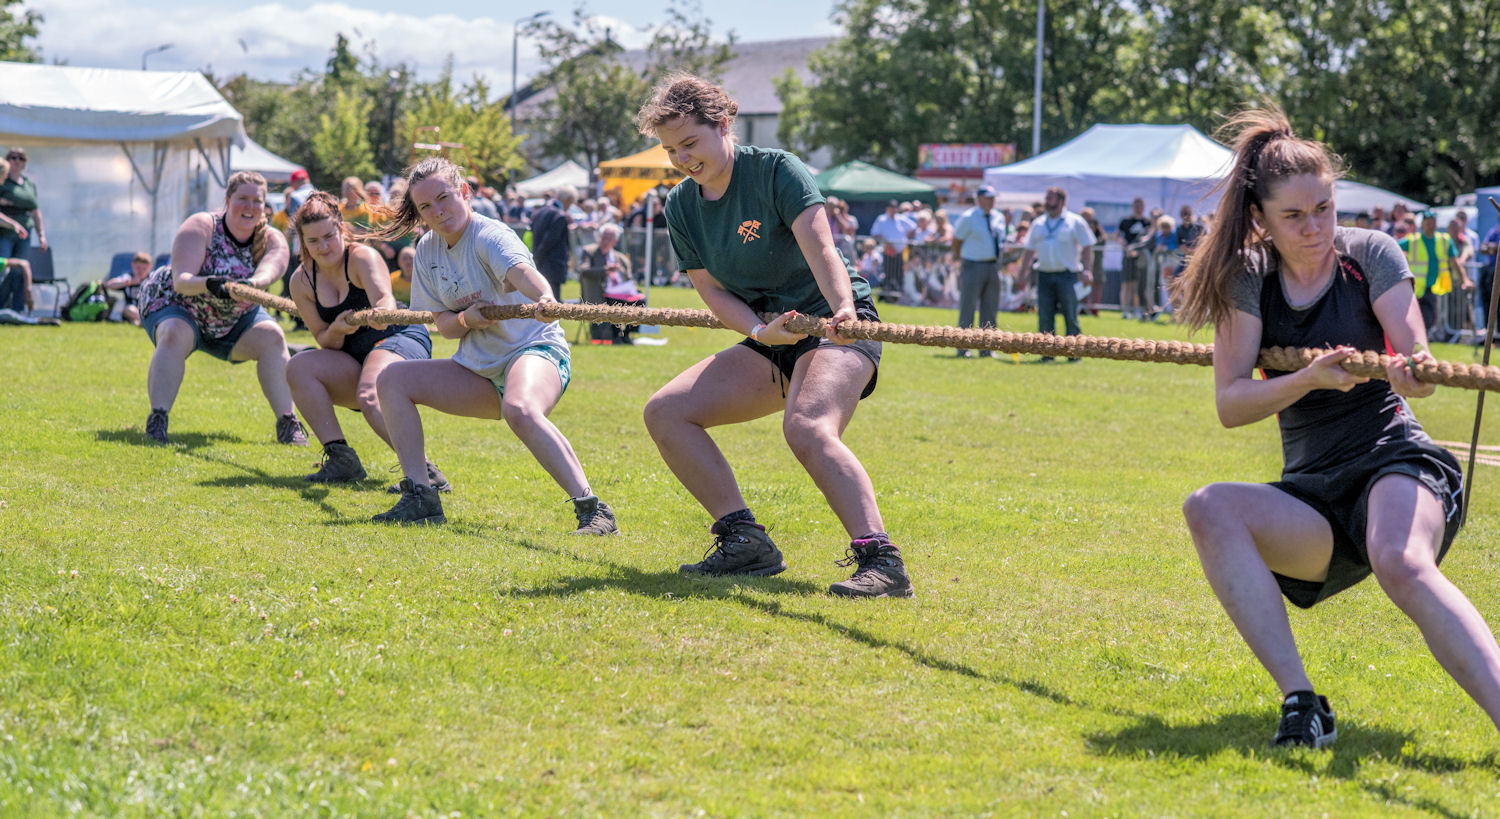 Highland Games Image 23